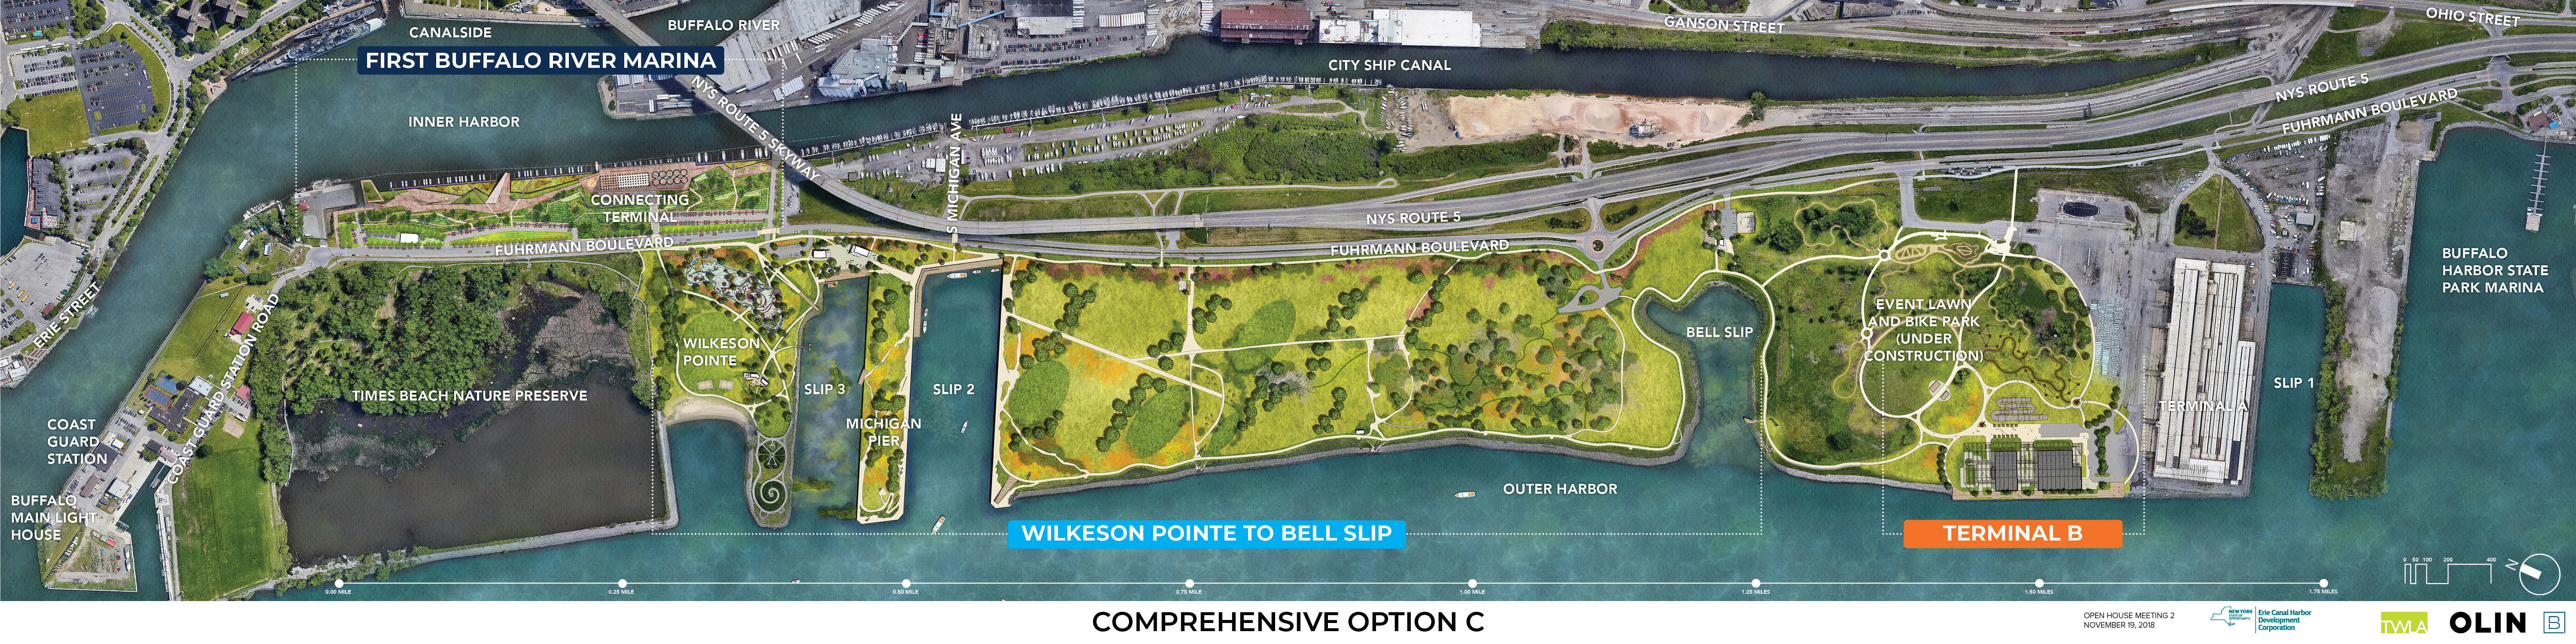 Overall Outer Harbor Capital Plan Option C